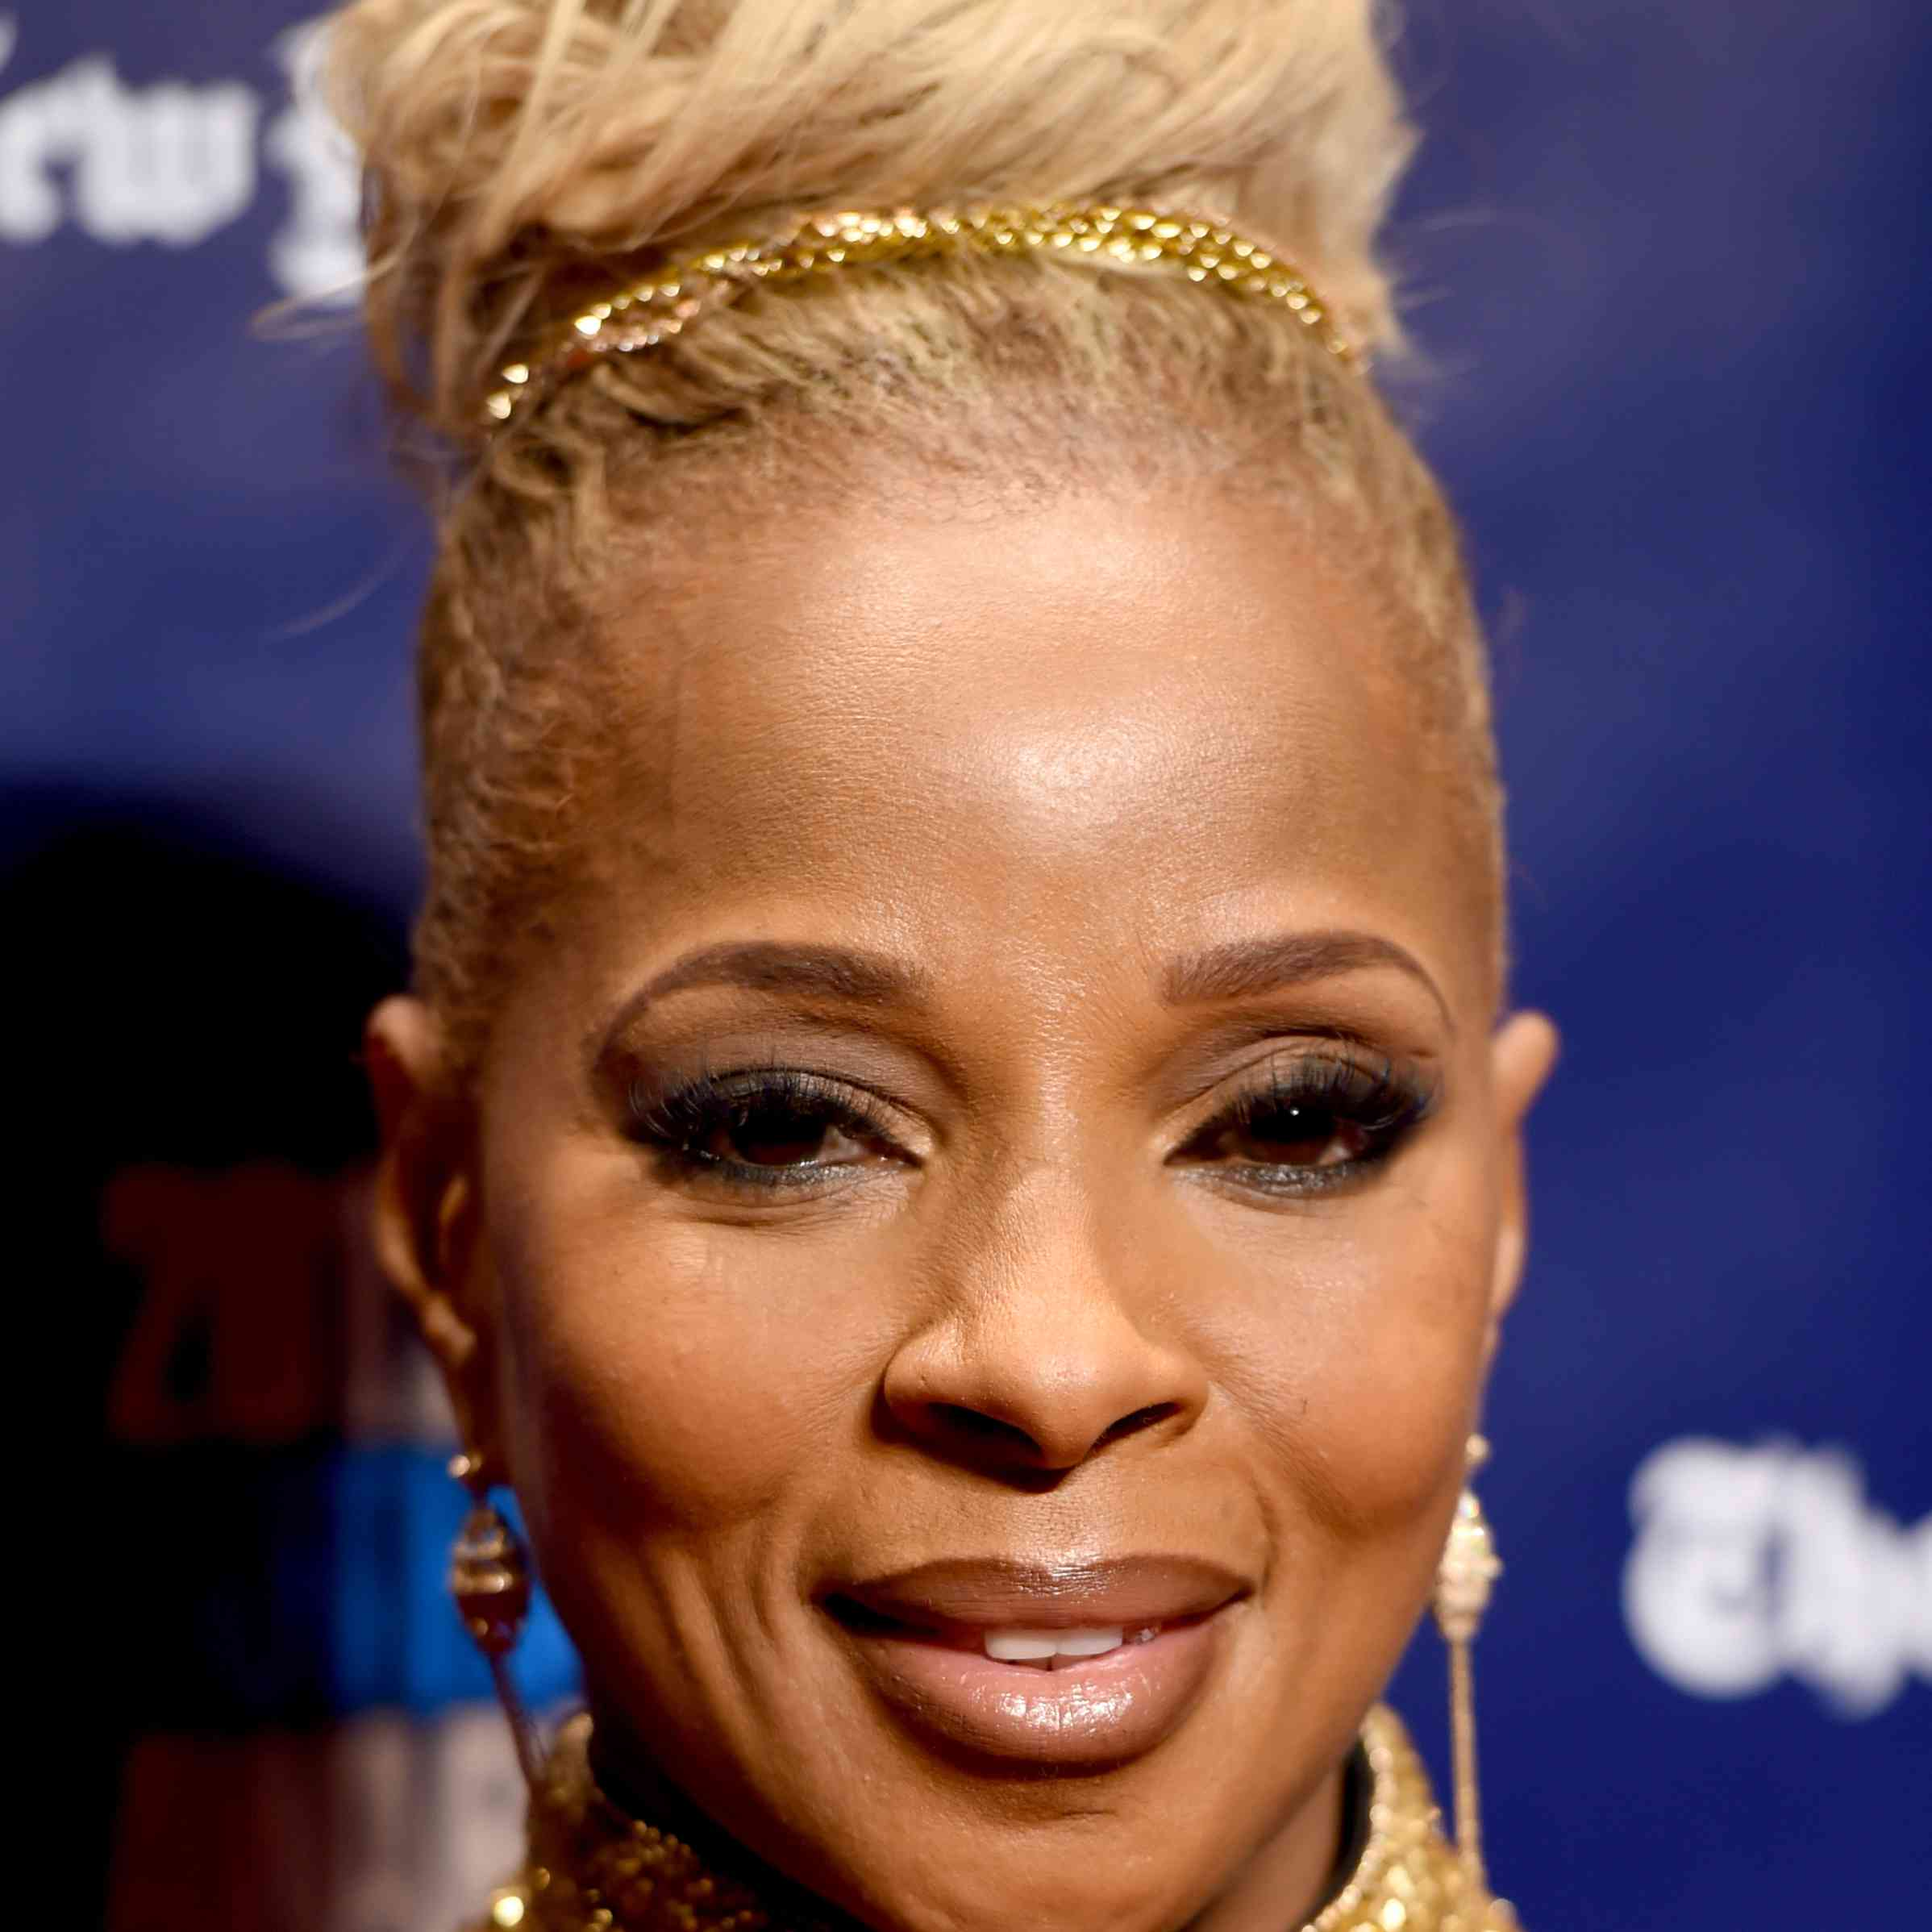 Mary J Blige at IFP's 27th Annual Gotham Independent Film Awards - Red Carpet